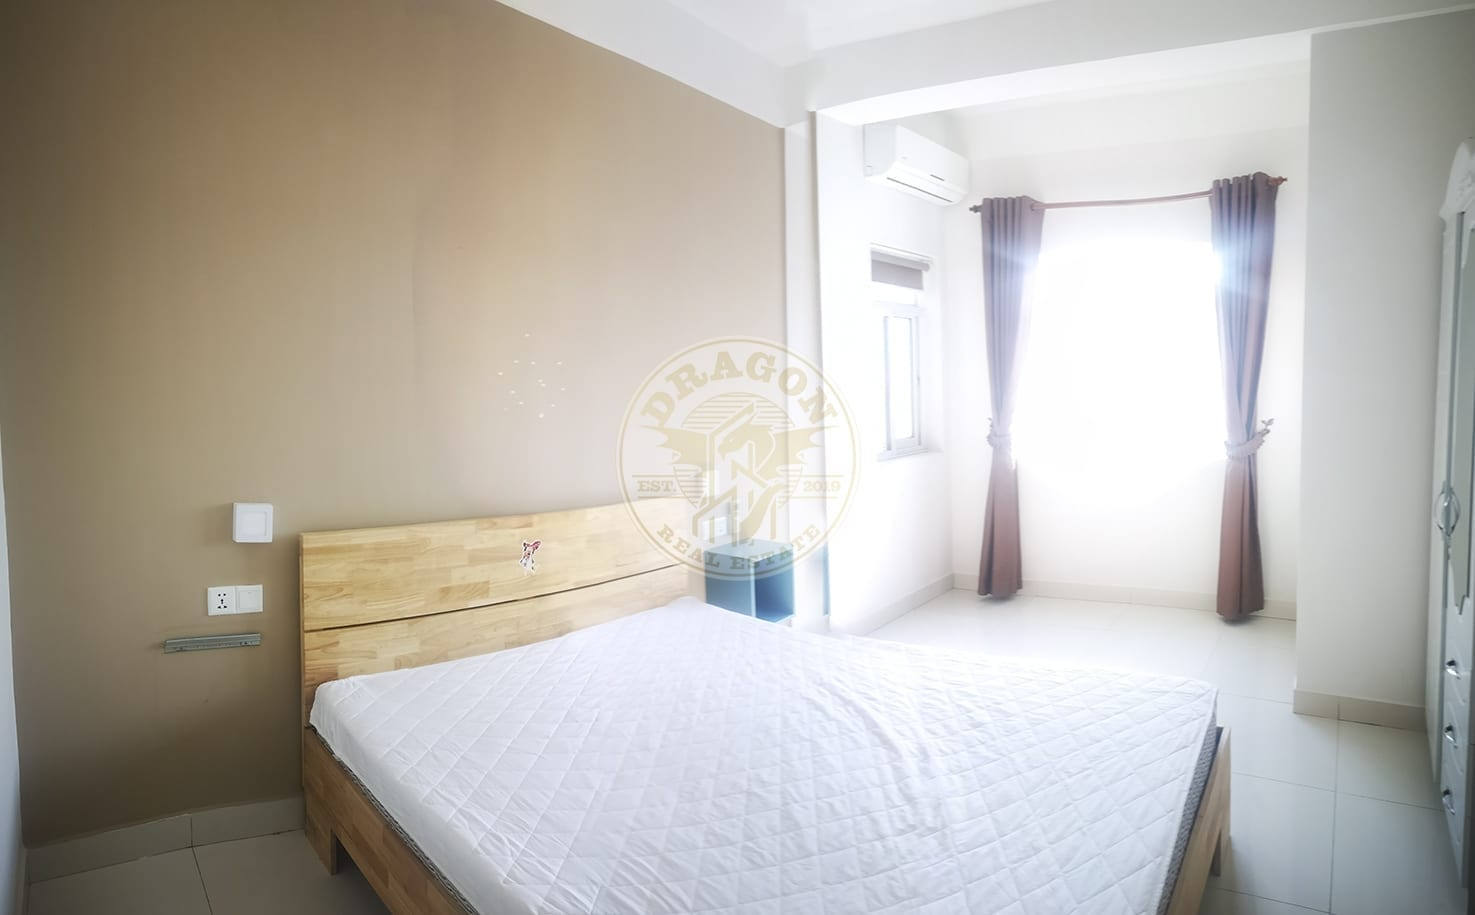 Apartment w/ Two balconies for Rent. Real Estate in Sihanoukville